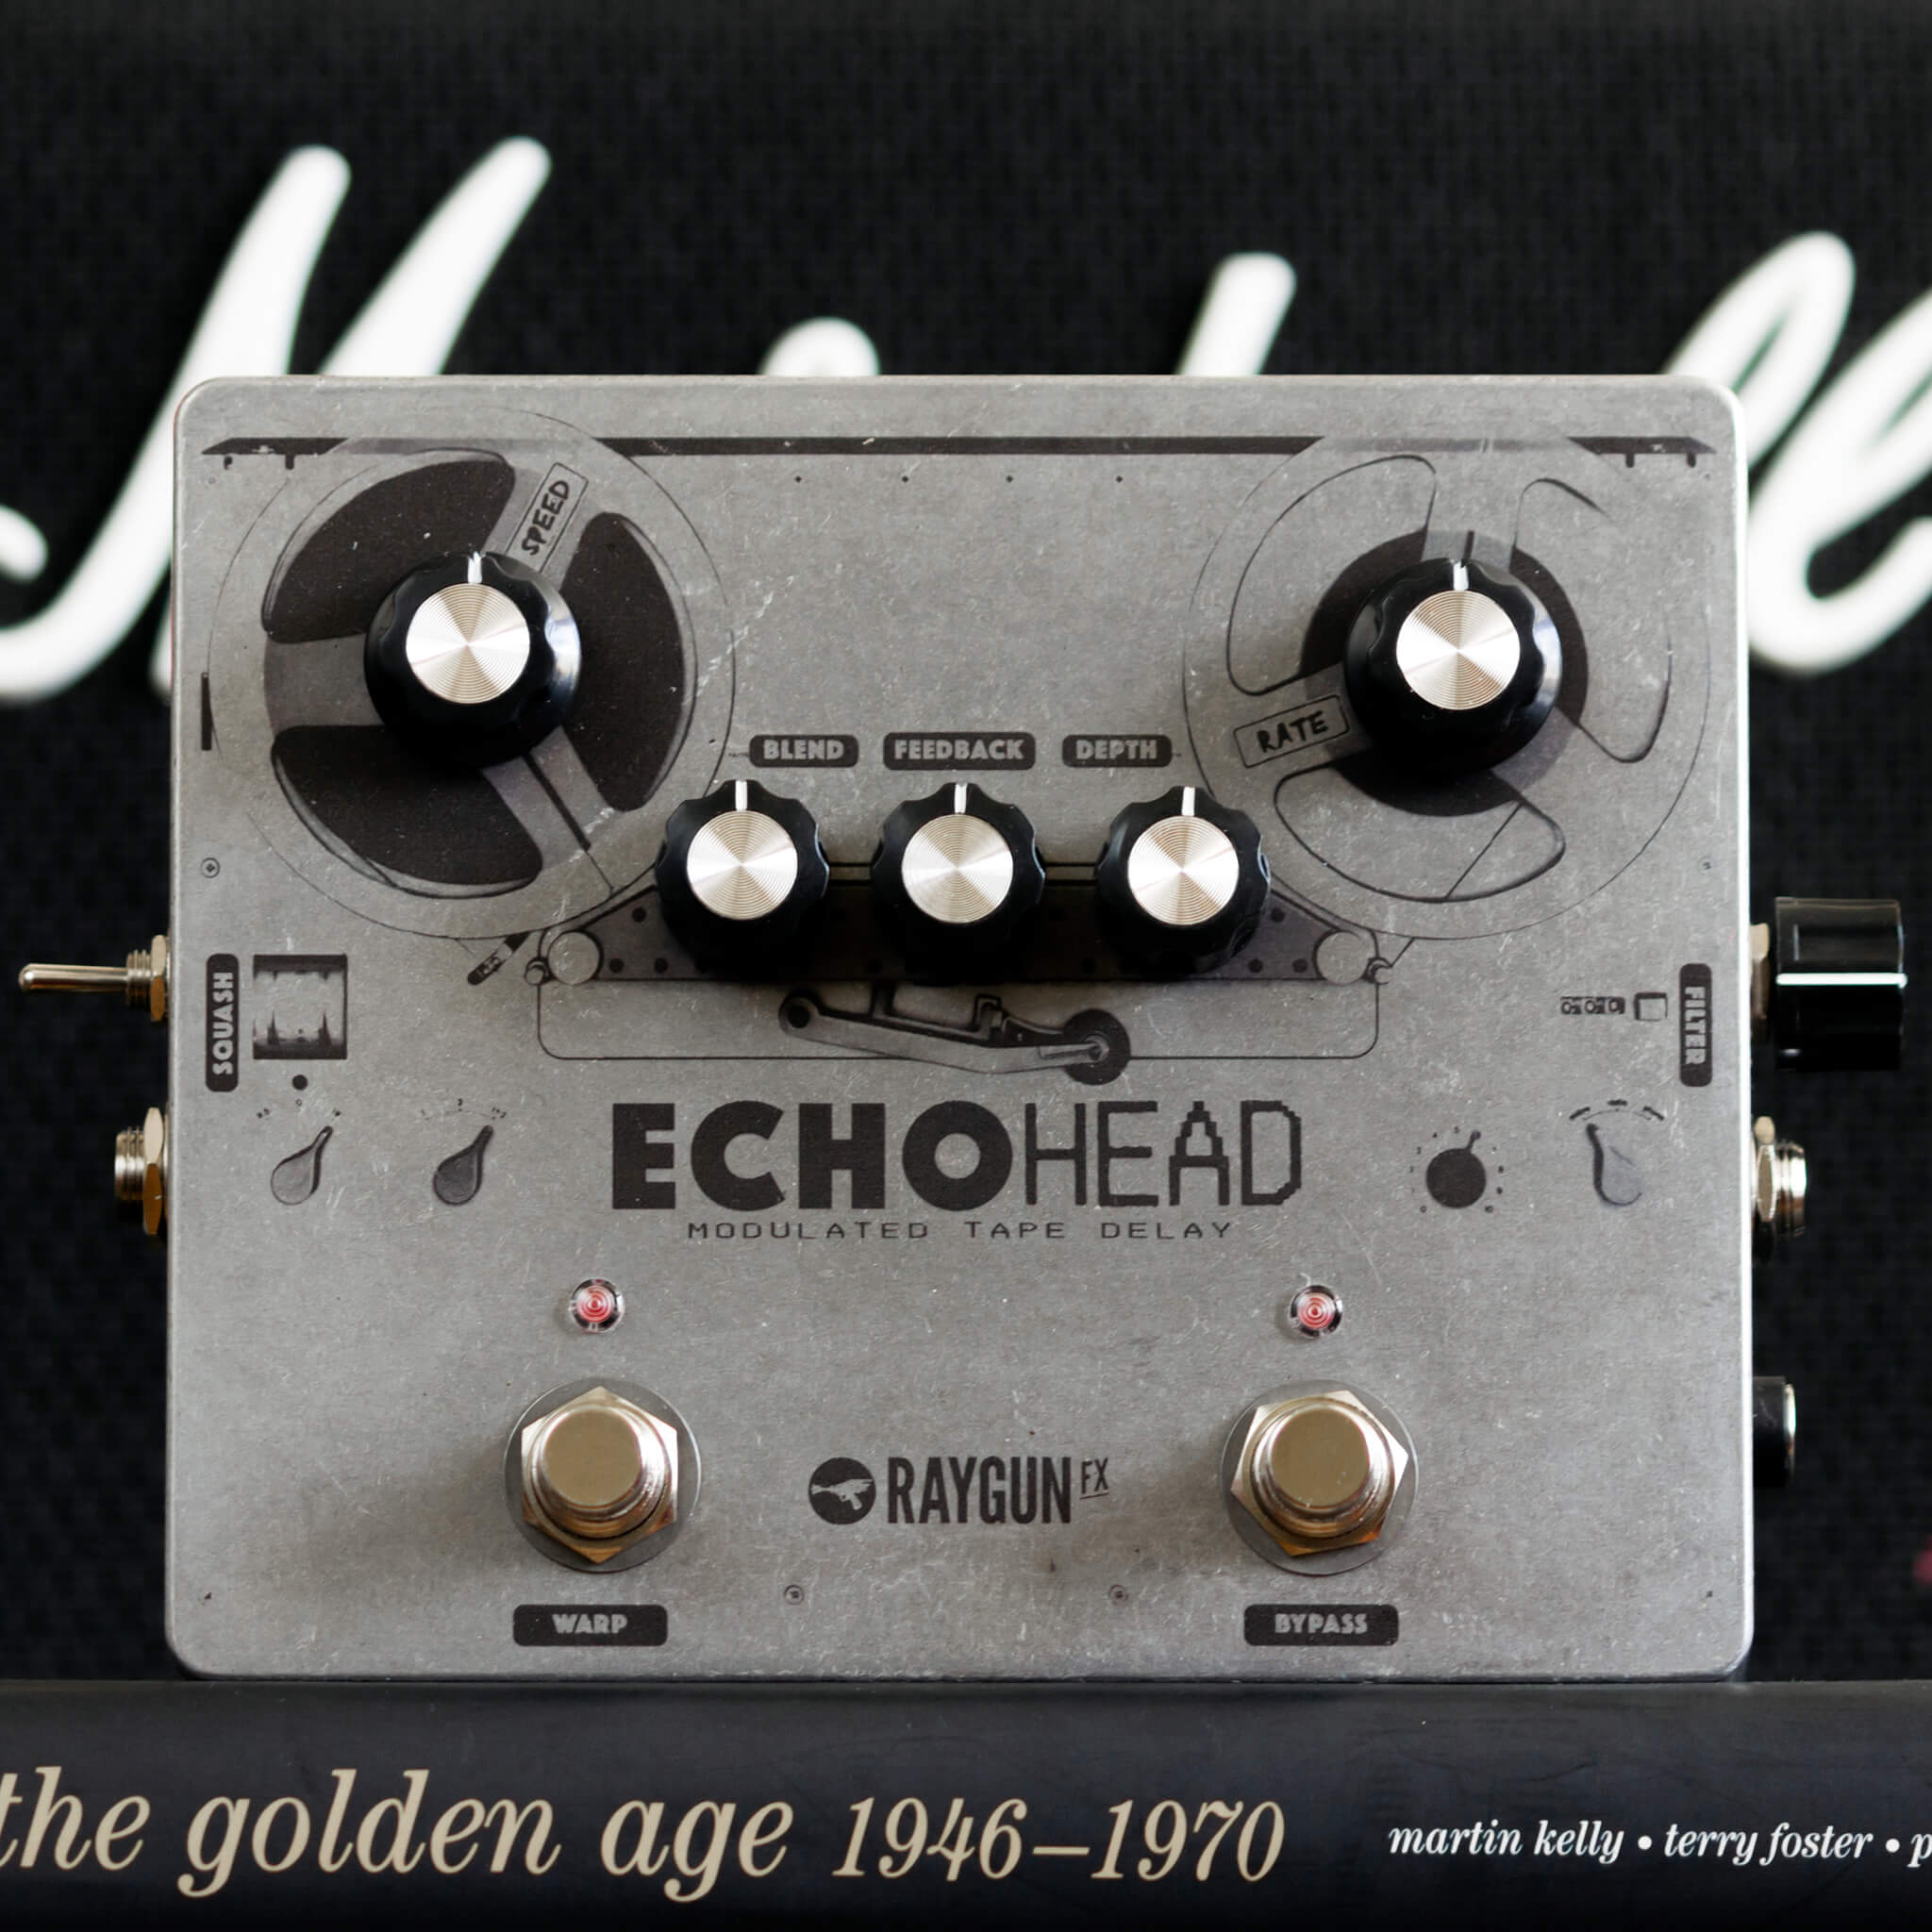 RAYGUN FX Echohead Analogue Delay Front Context - Boost Guitar Pedals